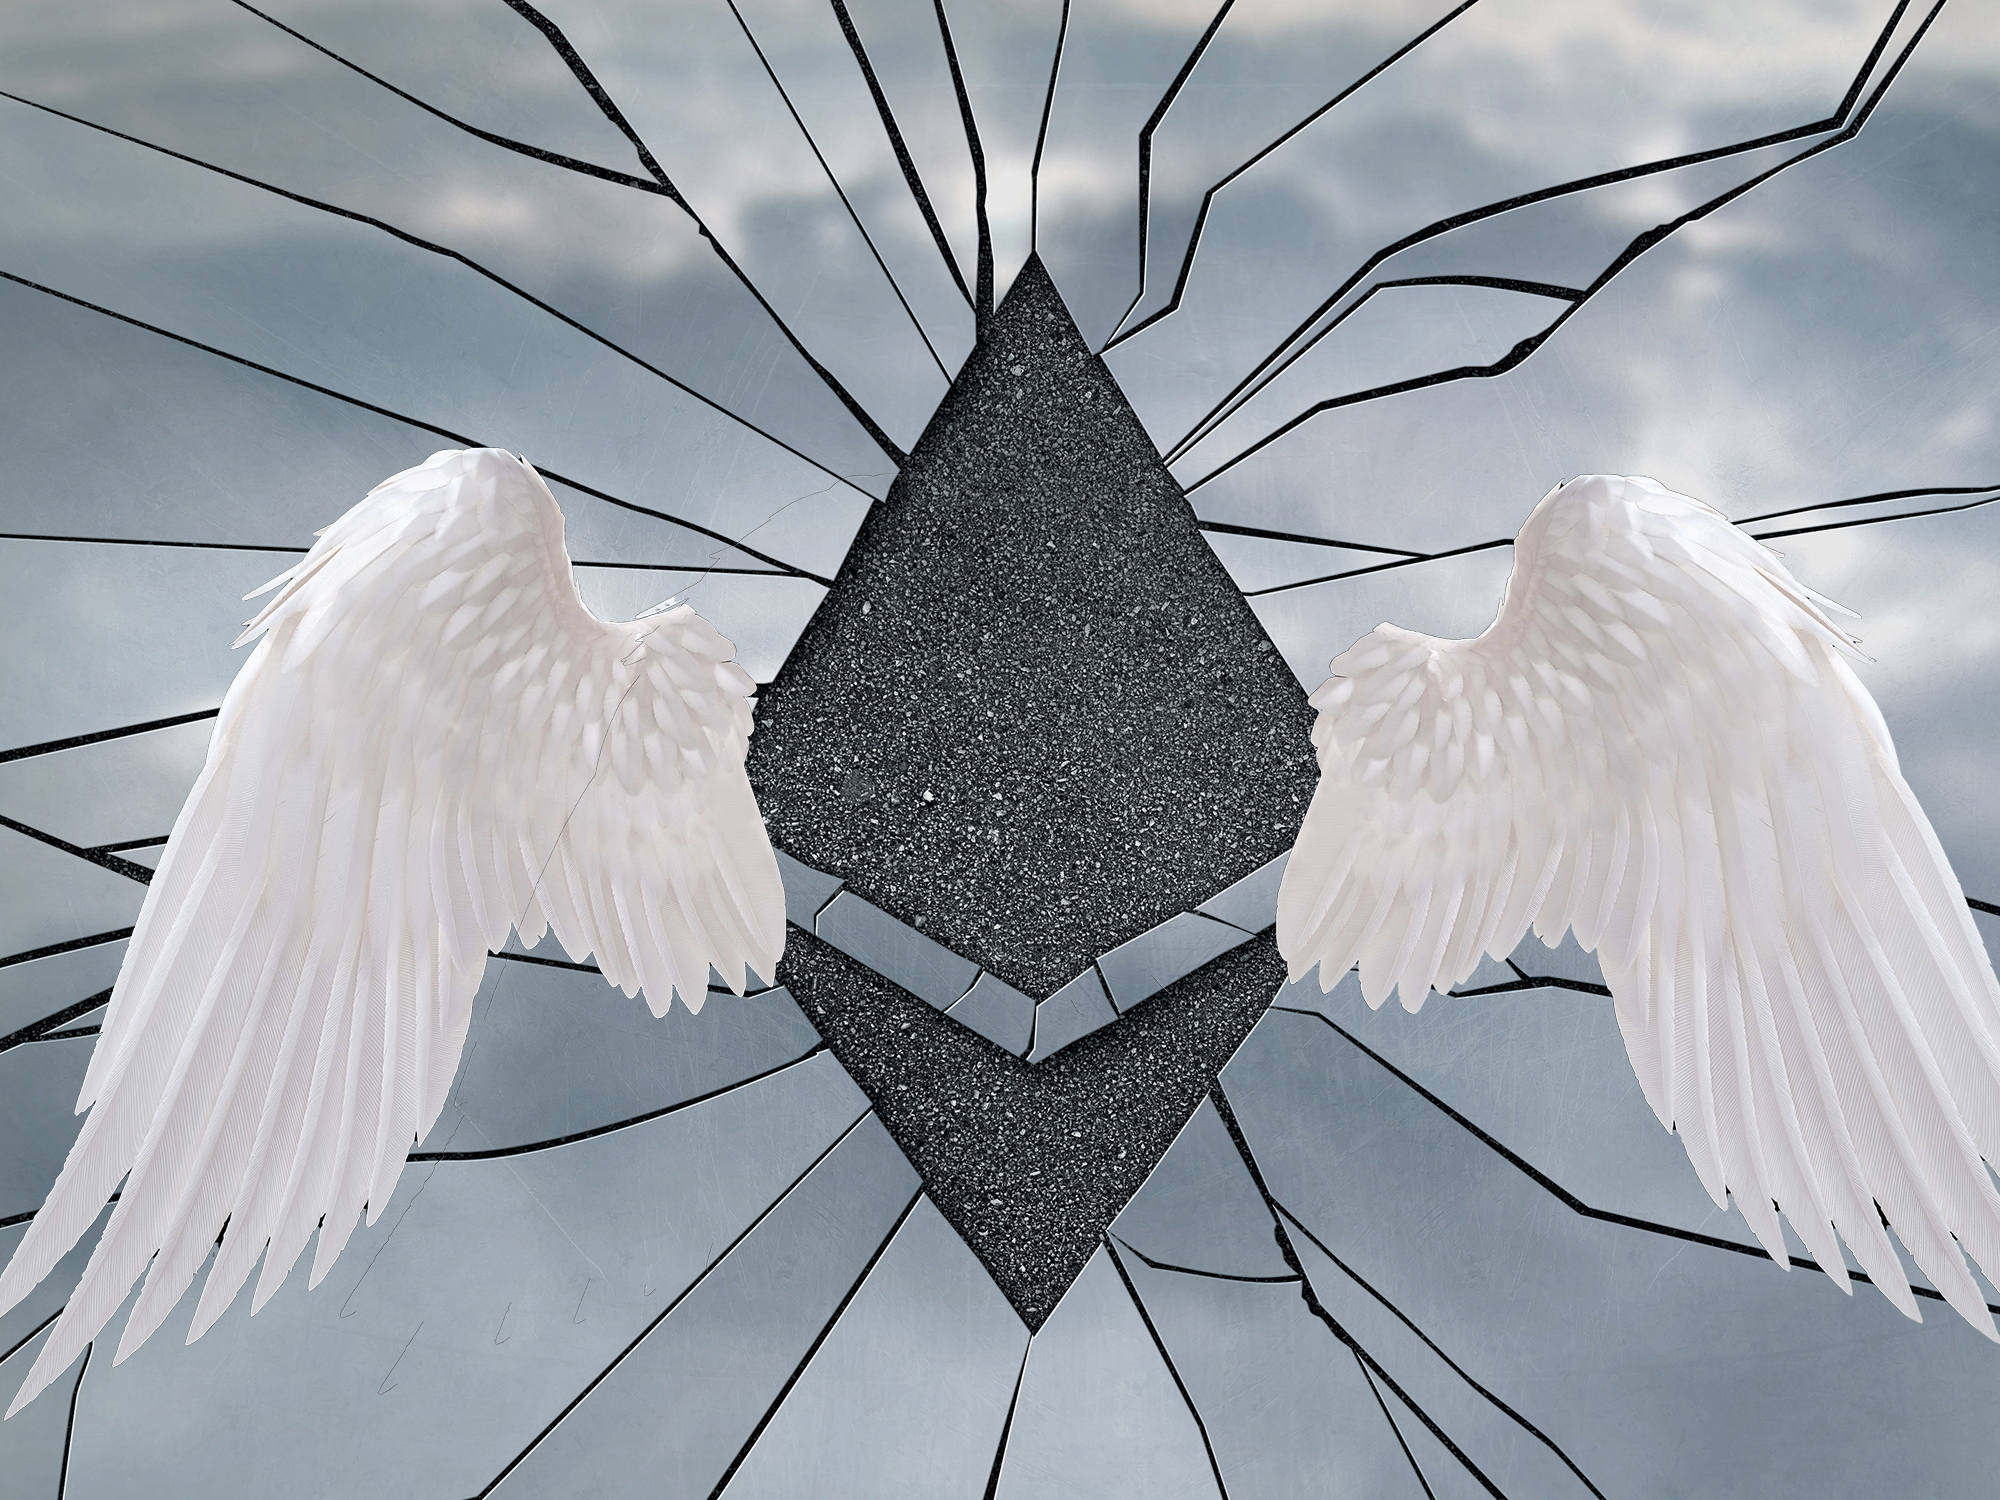 motherboard.vice.com - How Coders Hacked Back to 'Rescue' $208 Million in Ethereum